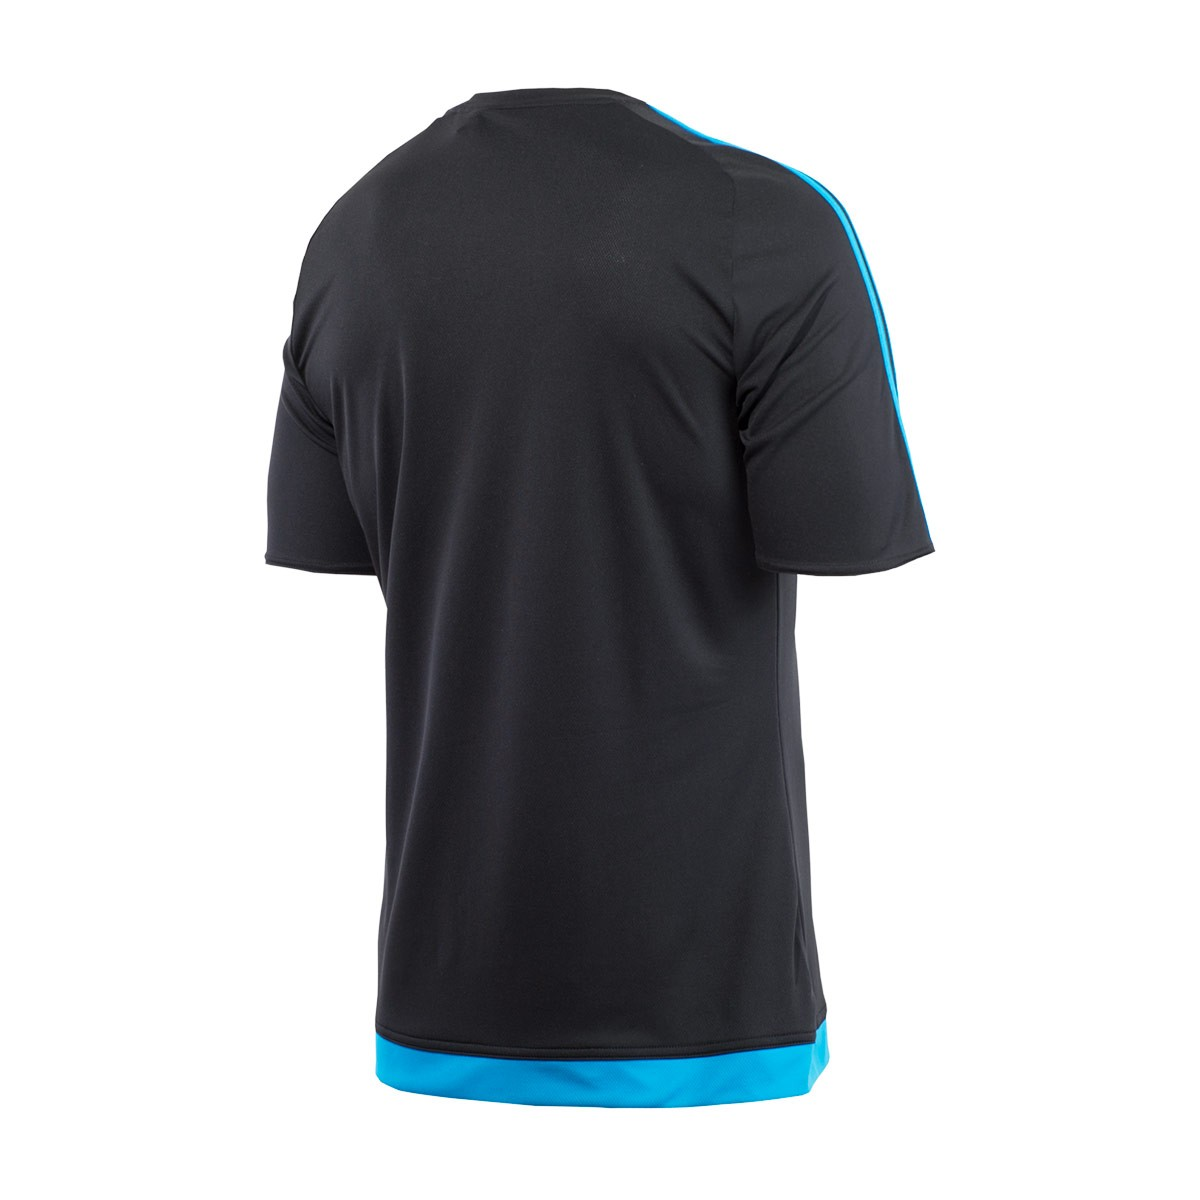 Camiseta Estro 15 mc Black Solar blue